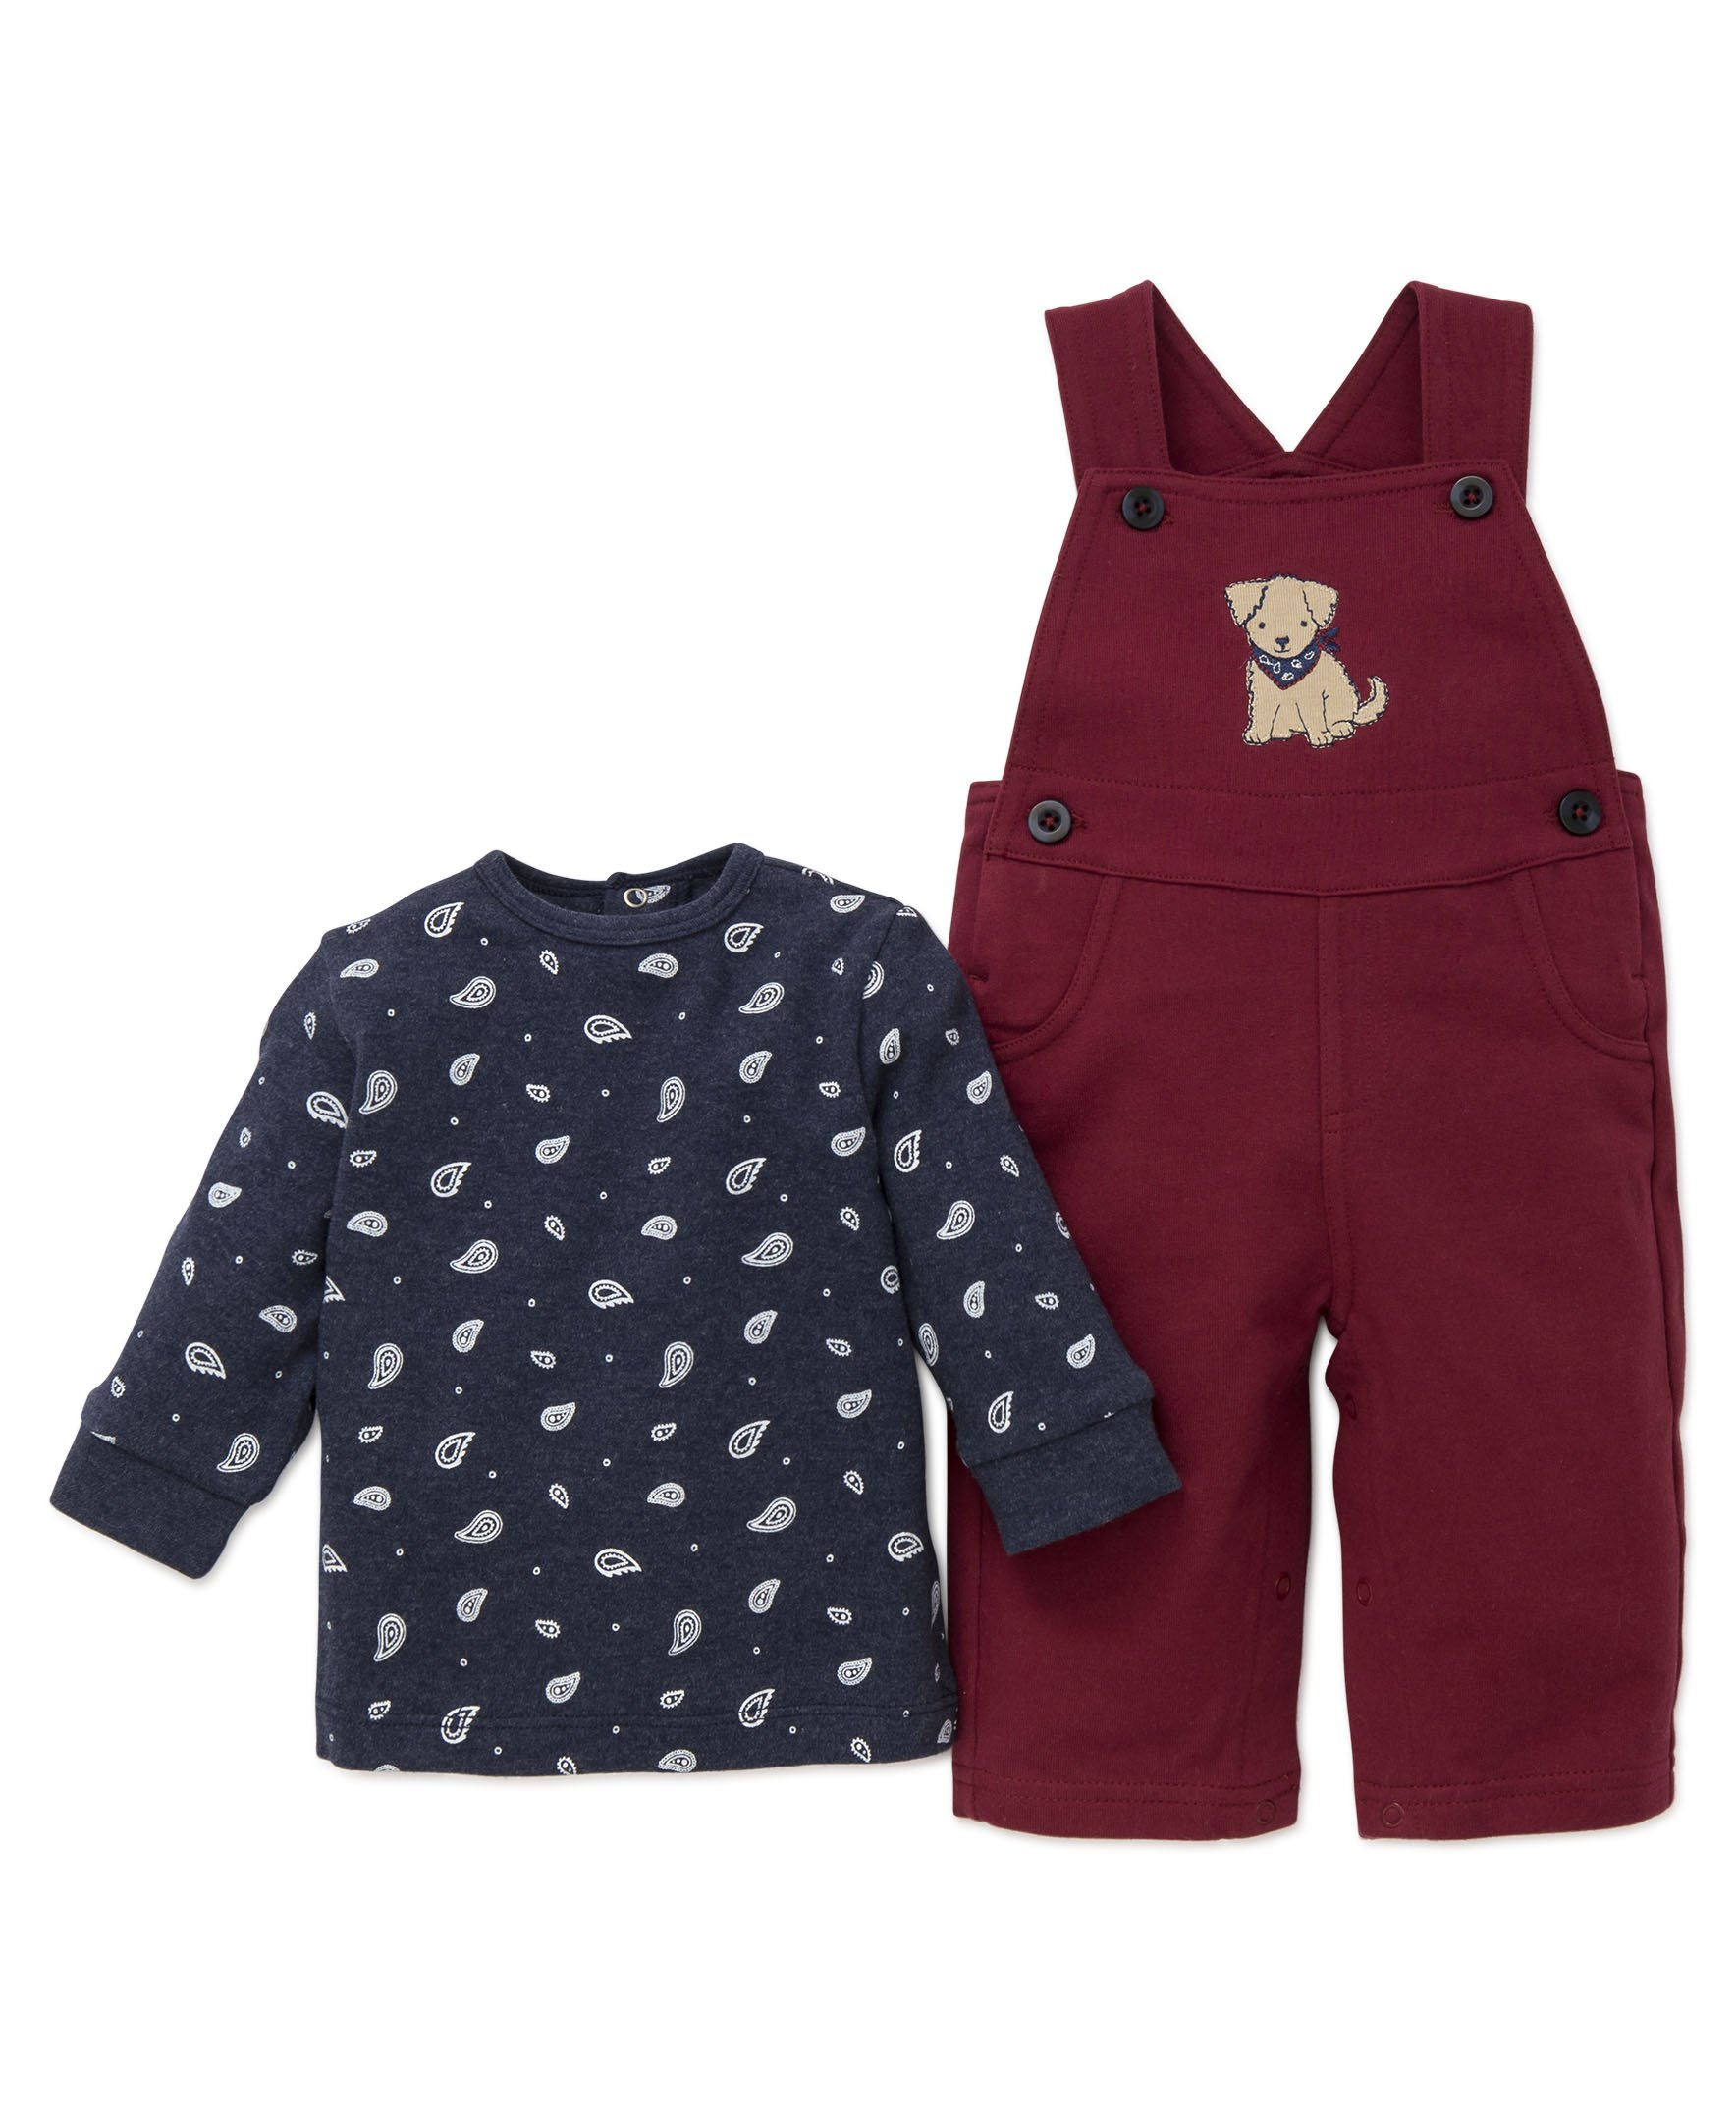 Little Me Baby Boys' 2 Piece Knit Overall Set